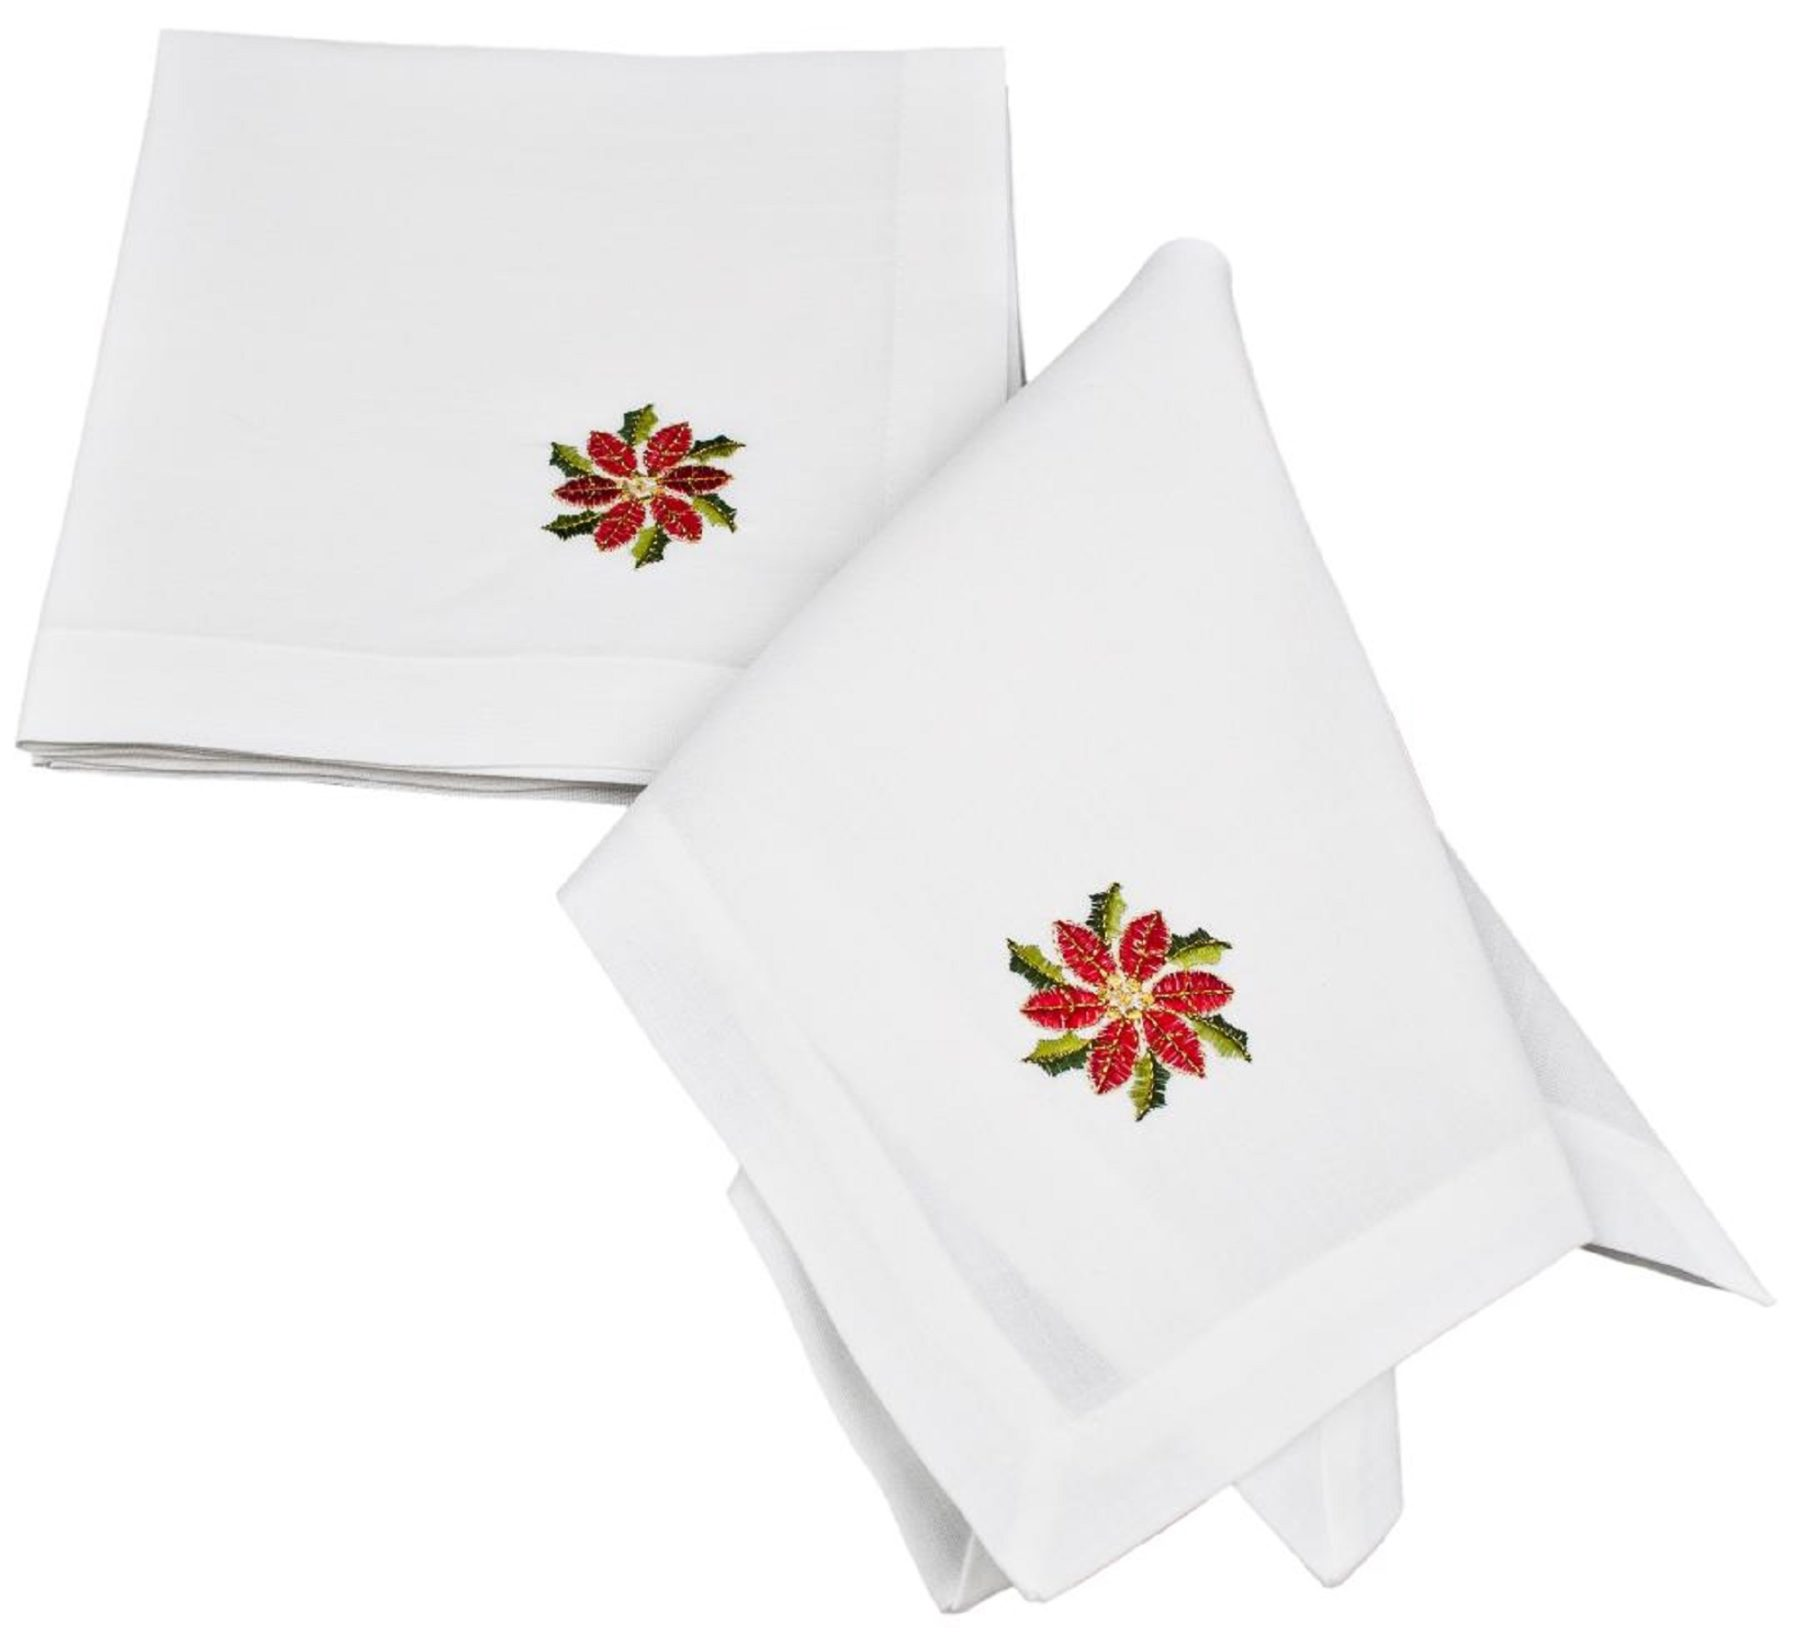 embroidered red poinsettia christmas napkins